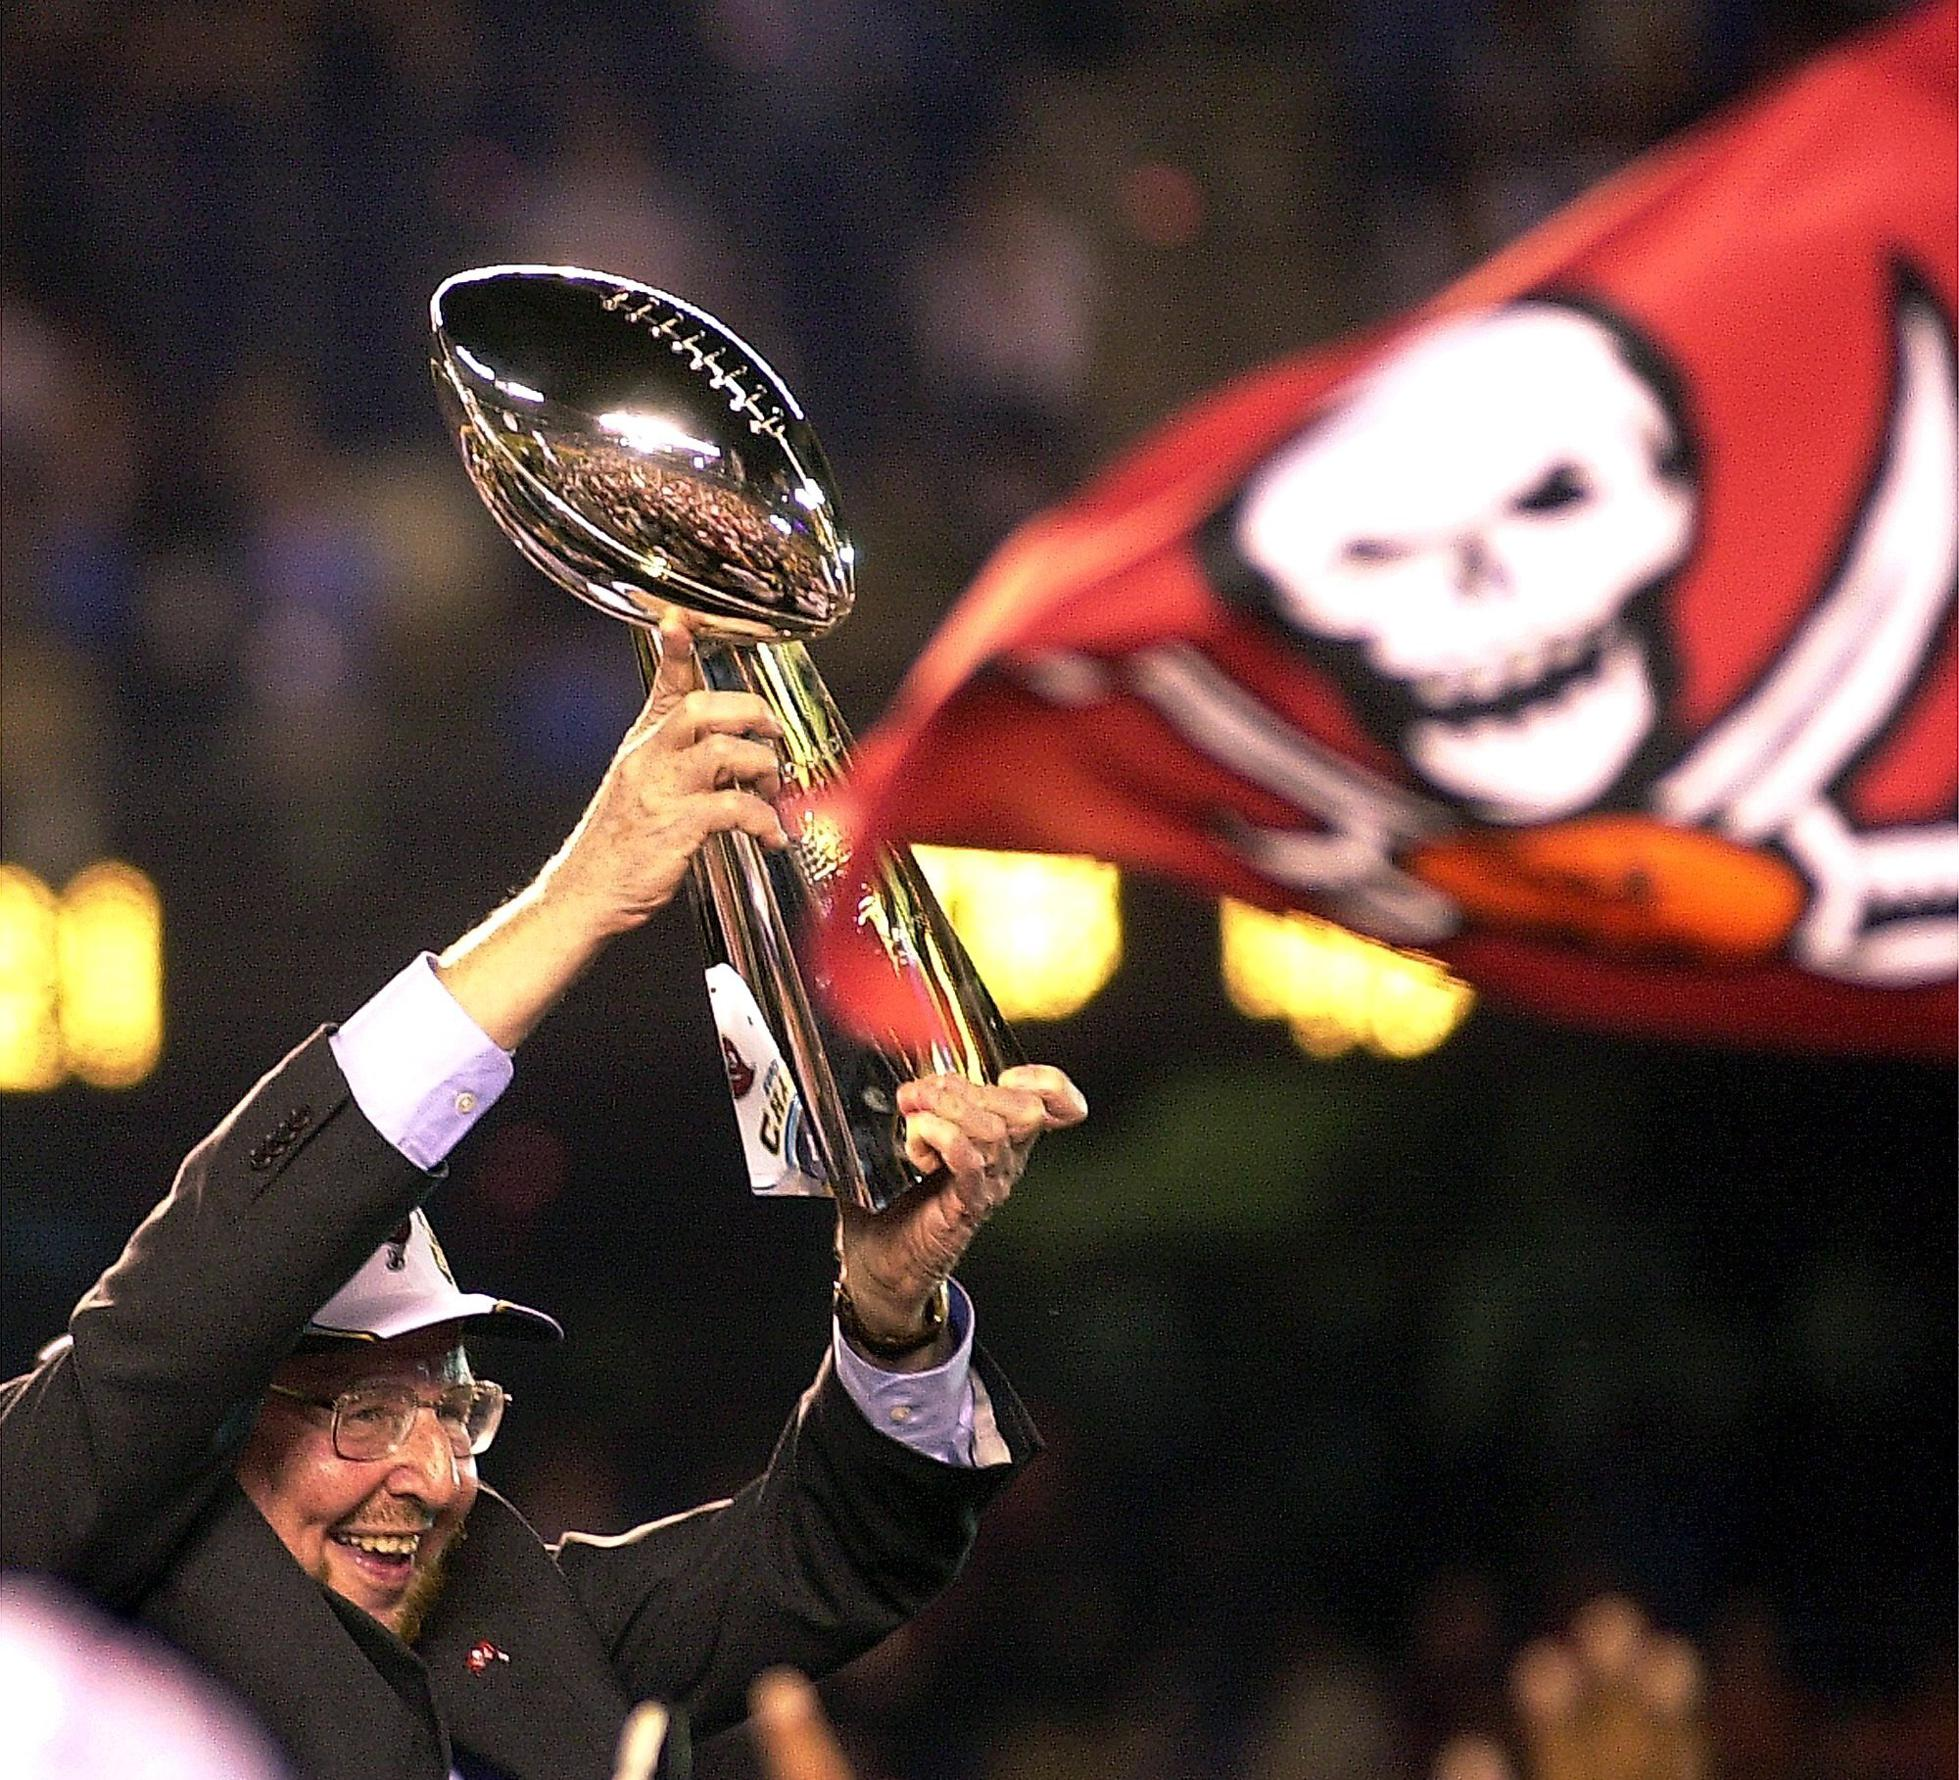 Malcolm Glazer celebrates Tampa Bay's Super Bowl XXXVII victory in 2003.